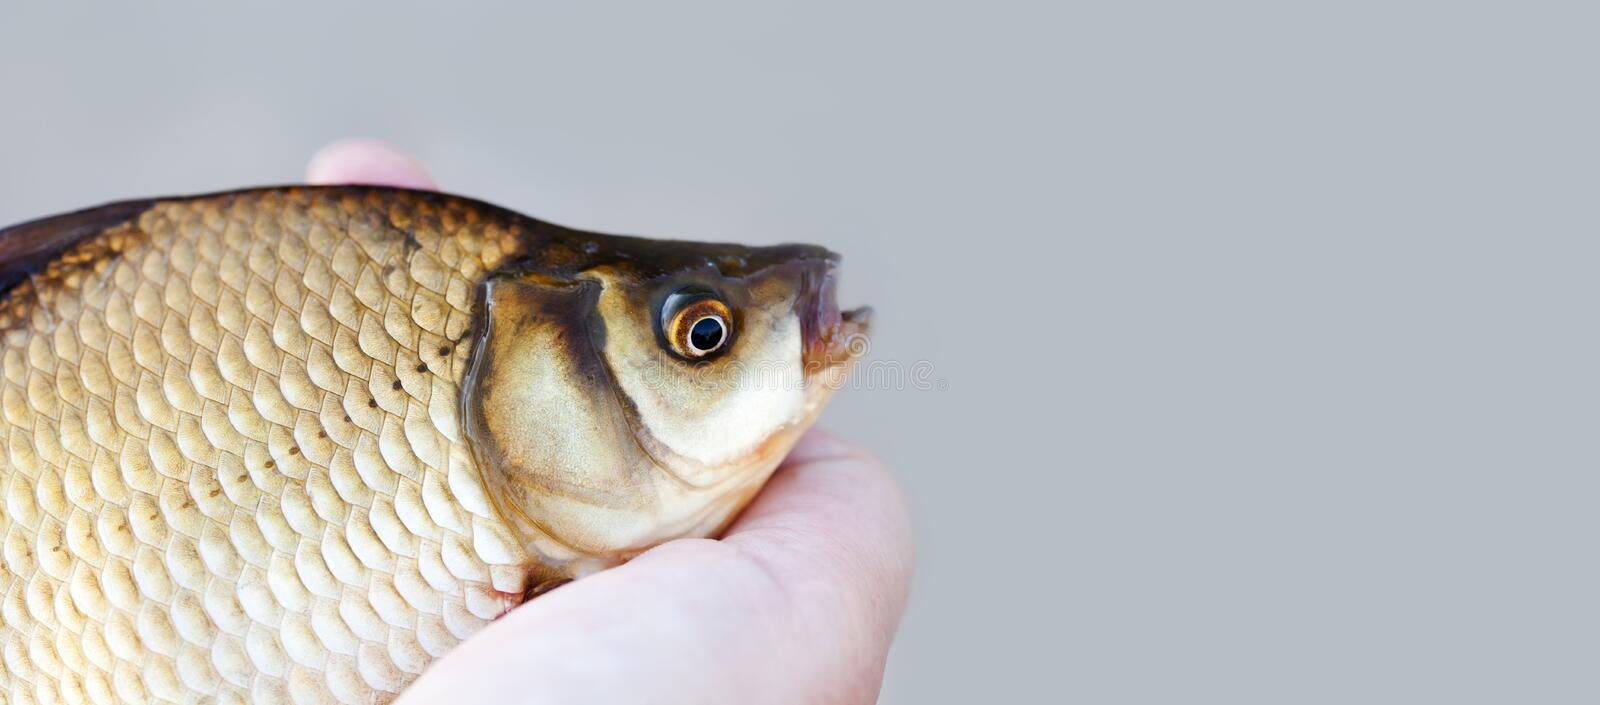 Carassius fish head, scales skin taexture photo. Macro view Crucian carp scaly pattern. Selective focus, shallow depth royalty free stock images